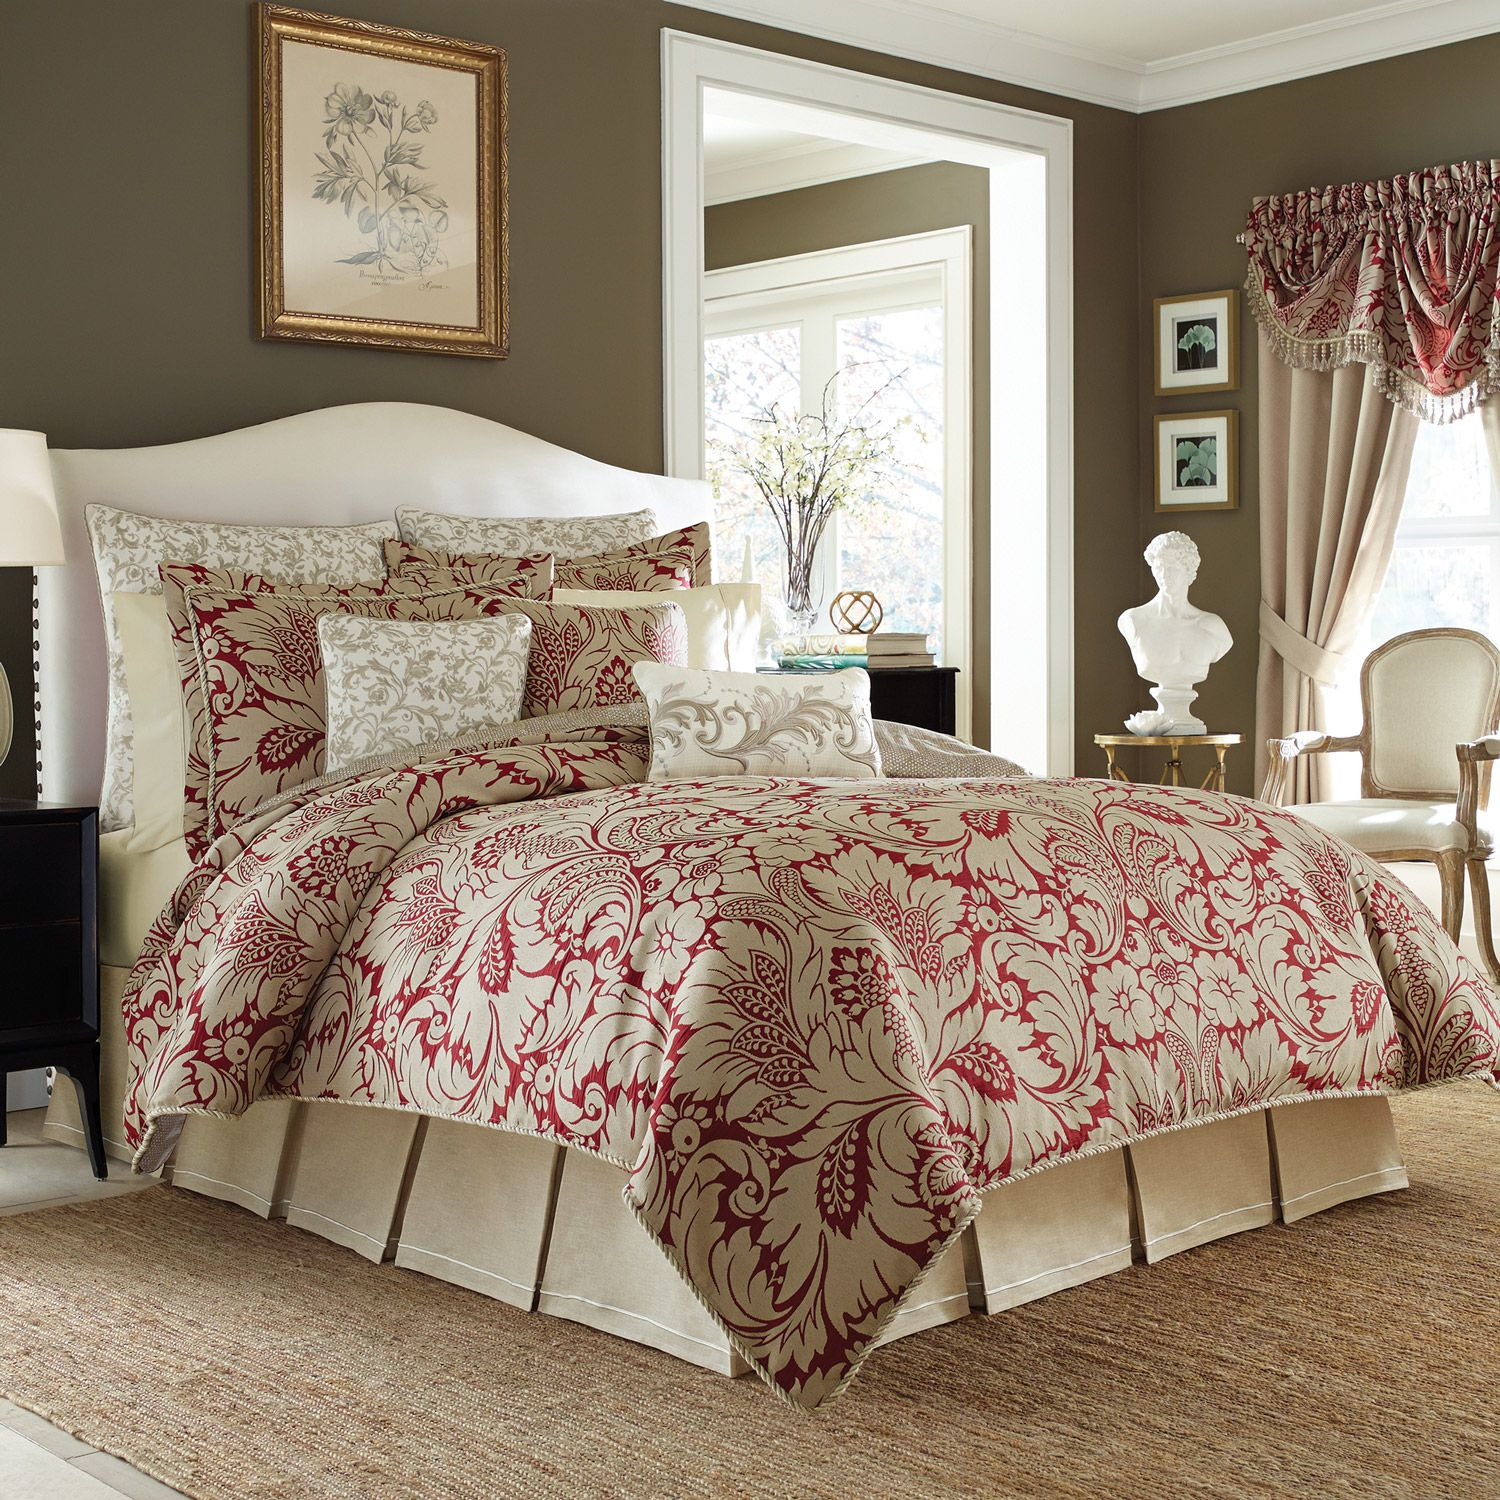 Fascinating california king bedding for bedroom design with california king bed frame